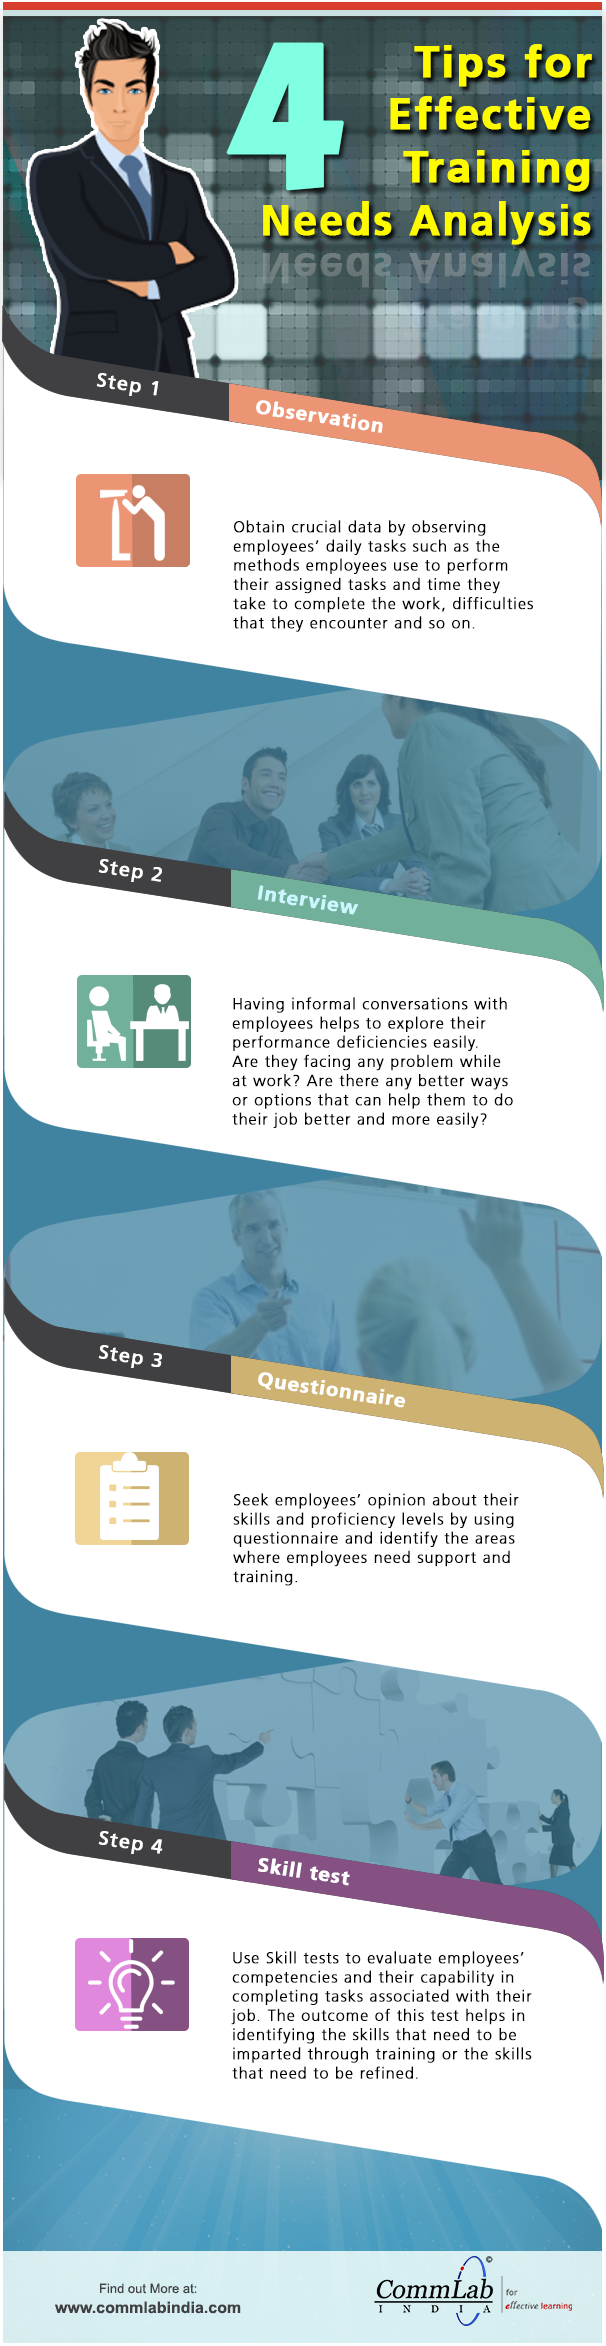 4 Tips for Effective Training Needs Analysis - An Infographic